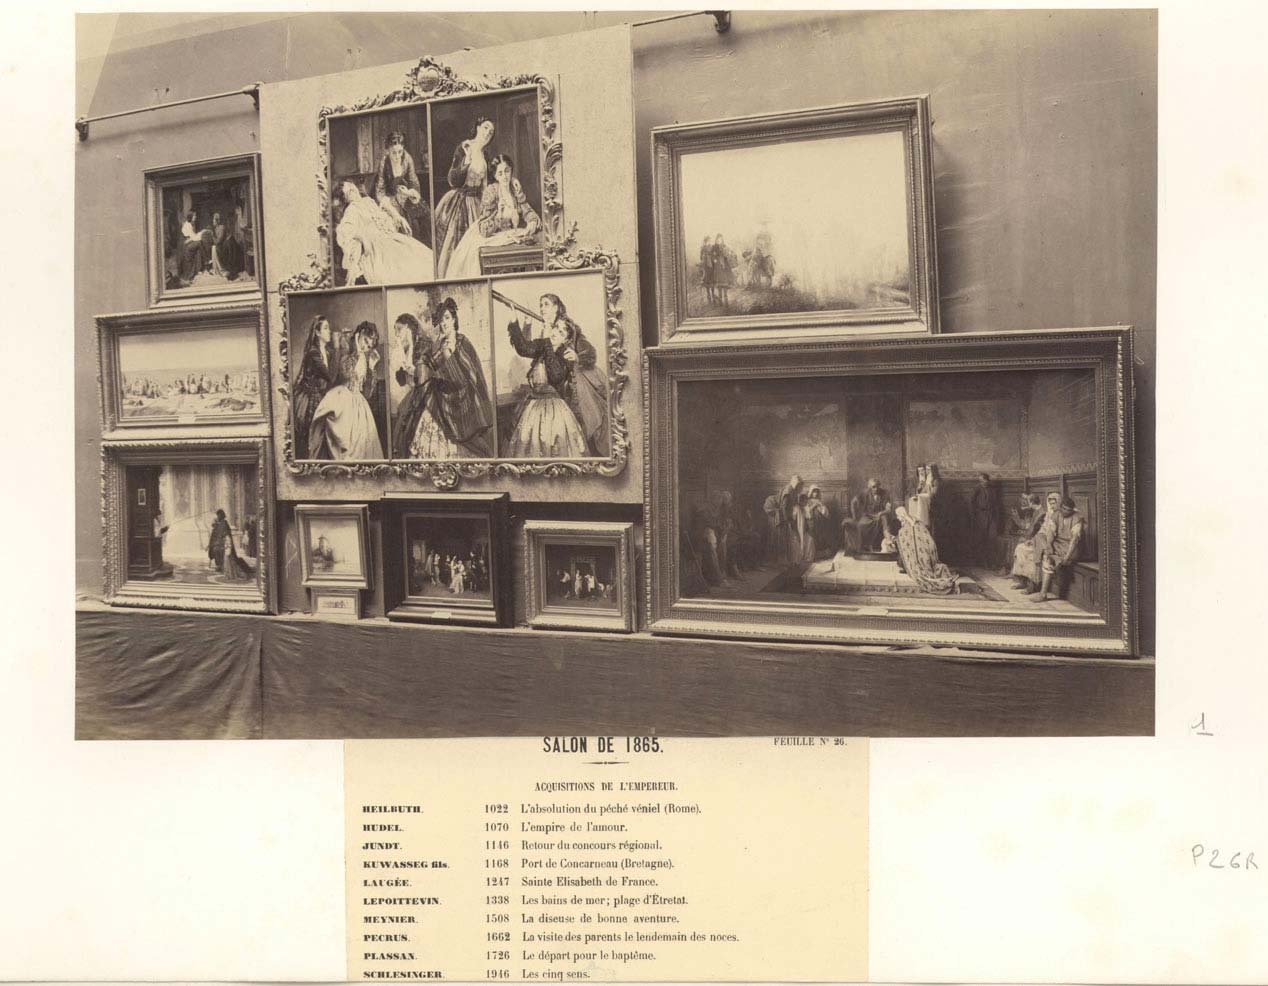 In researching the lot, Martina Fusari located a period photograph of Henri Guillaume Schlesinger's The Five Senses on display at the 1865 Paris Salon. Image courtesy Bonhams